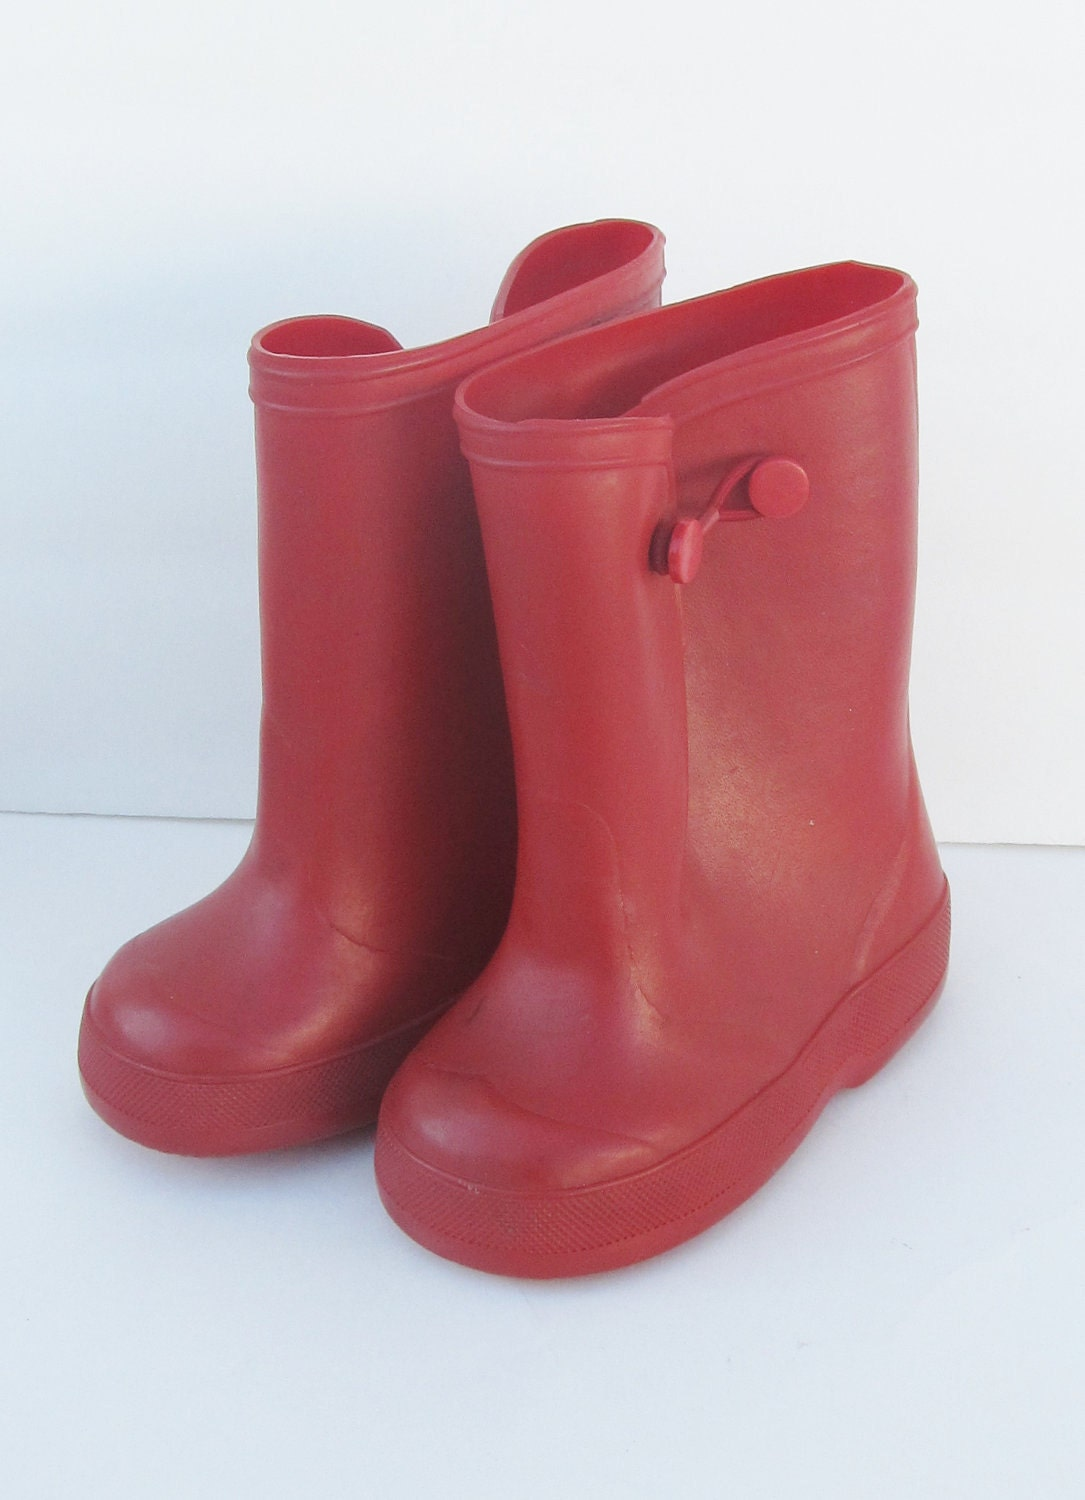 Vintage Child's RED RUBBER Rain Boots sz5